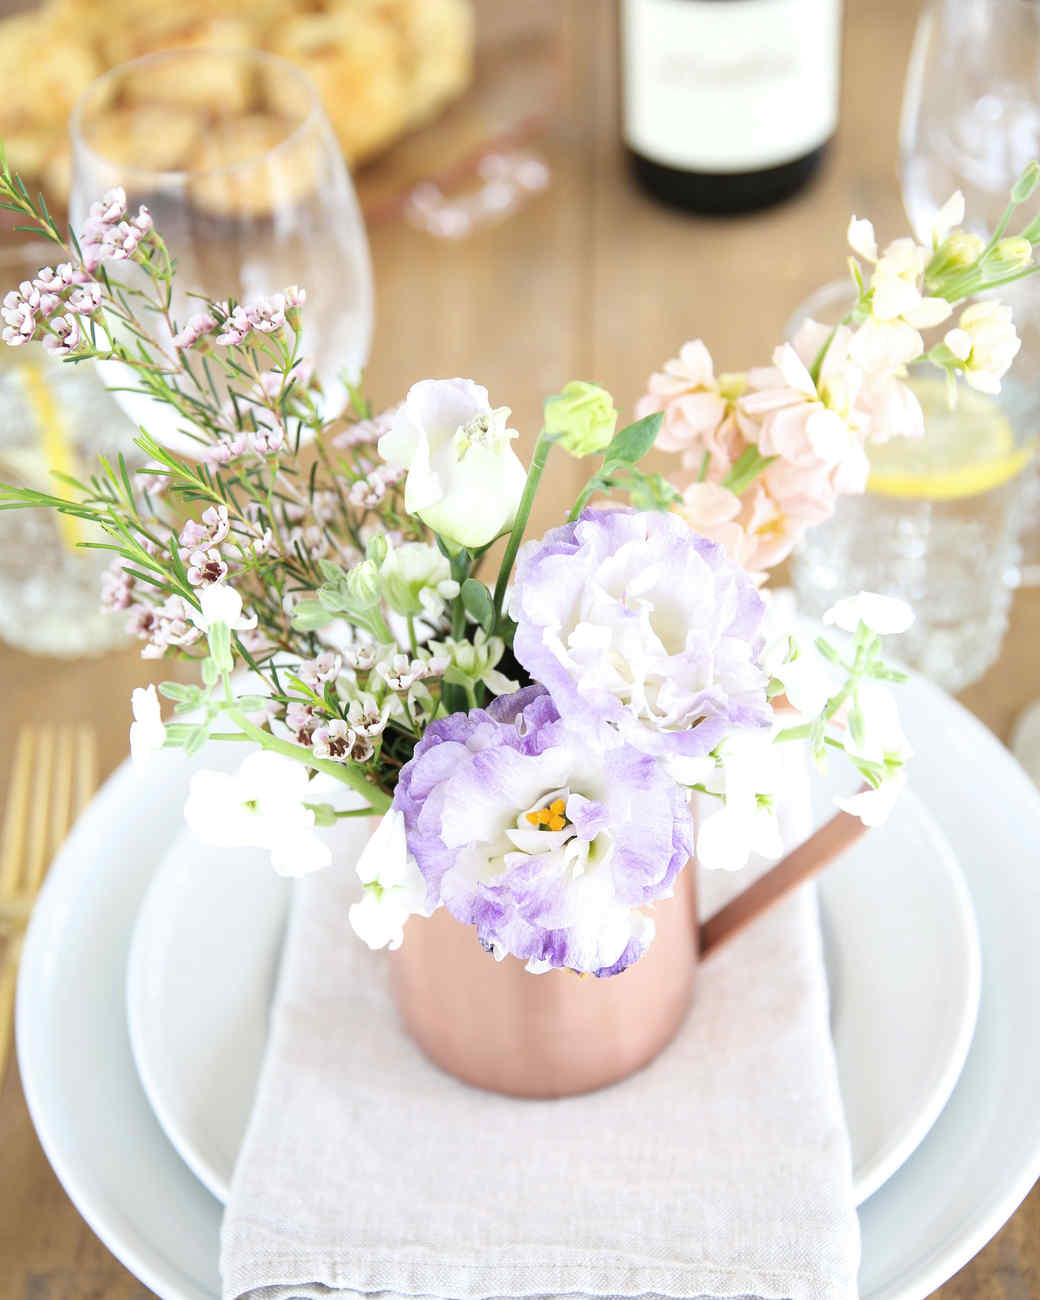 easter-flowers-place-setting-arrangements.jpg